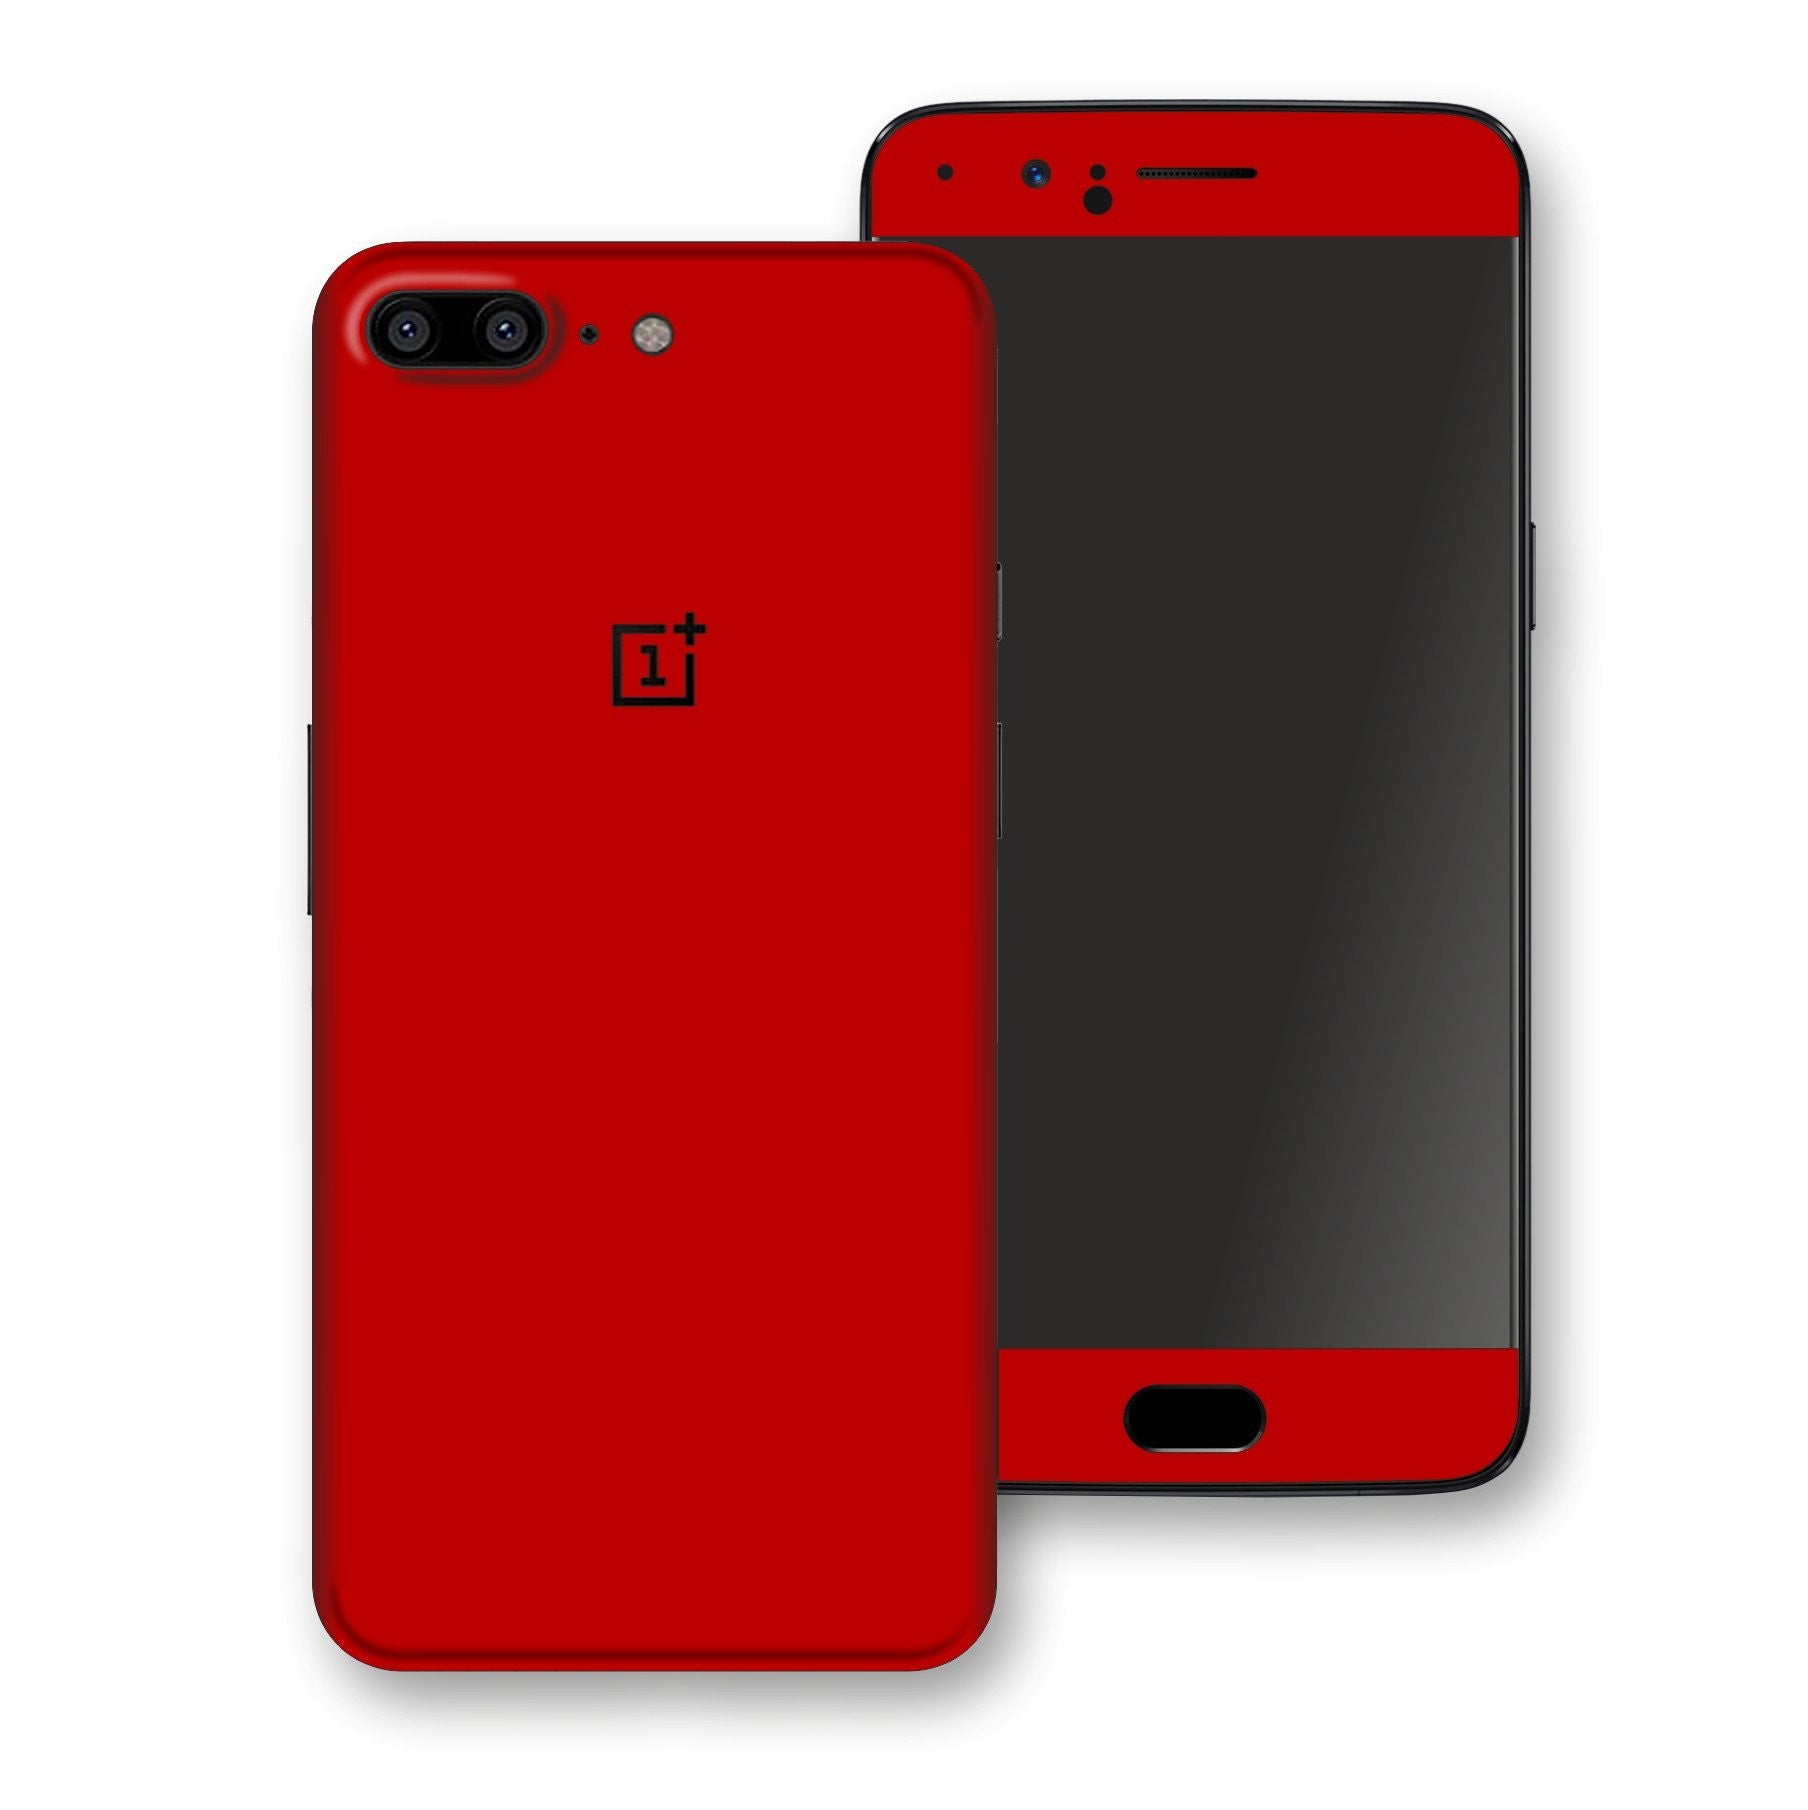 OnePlus 5 Deep Red Glossy Gloss Finish Skin, Decal, Wrap, Protector, Cover by EasySkinz | EasySkinz.com